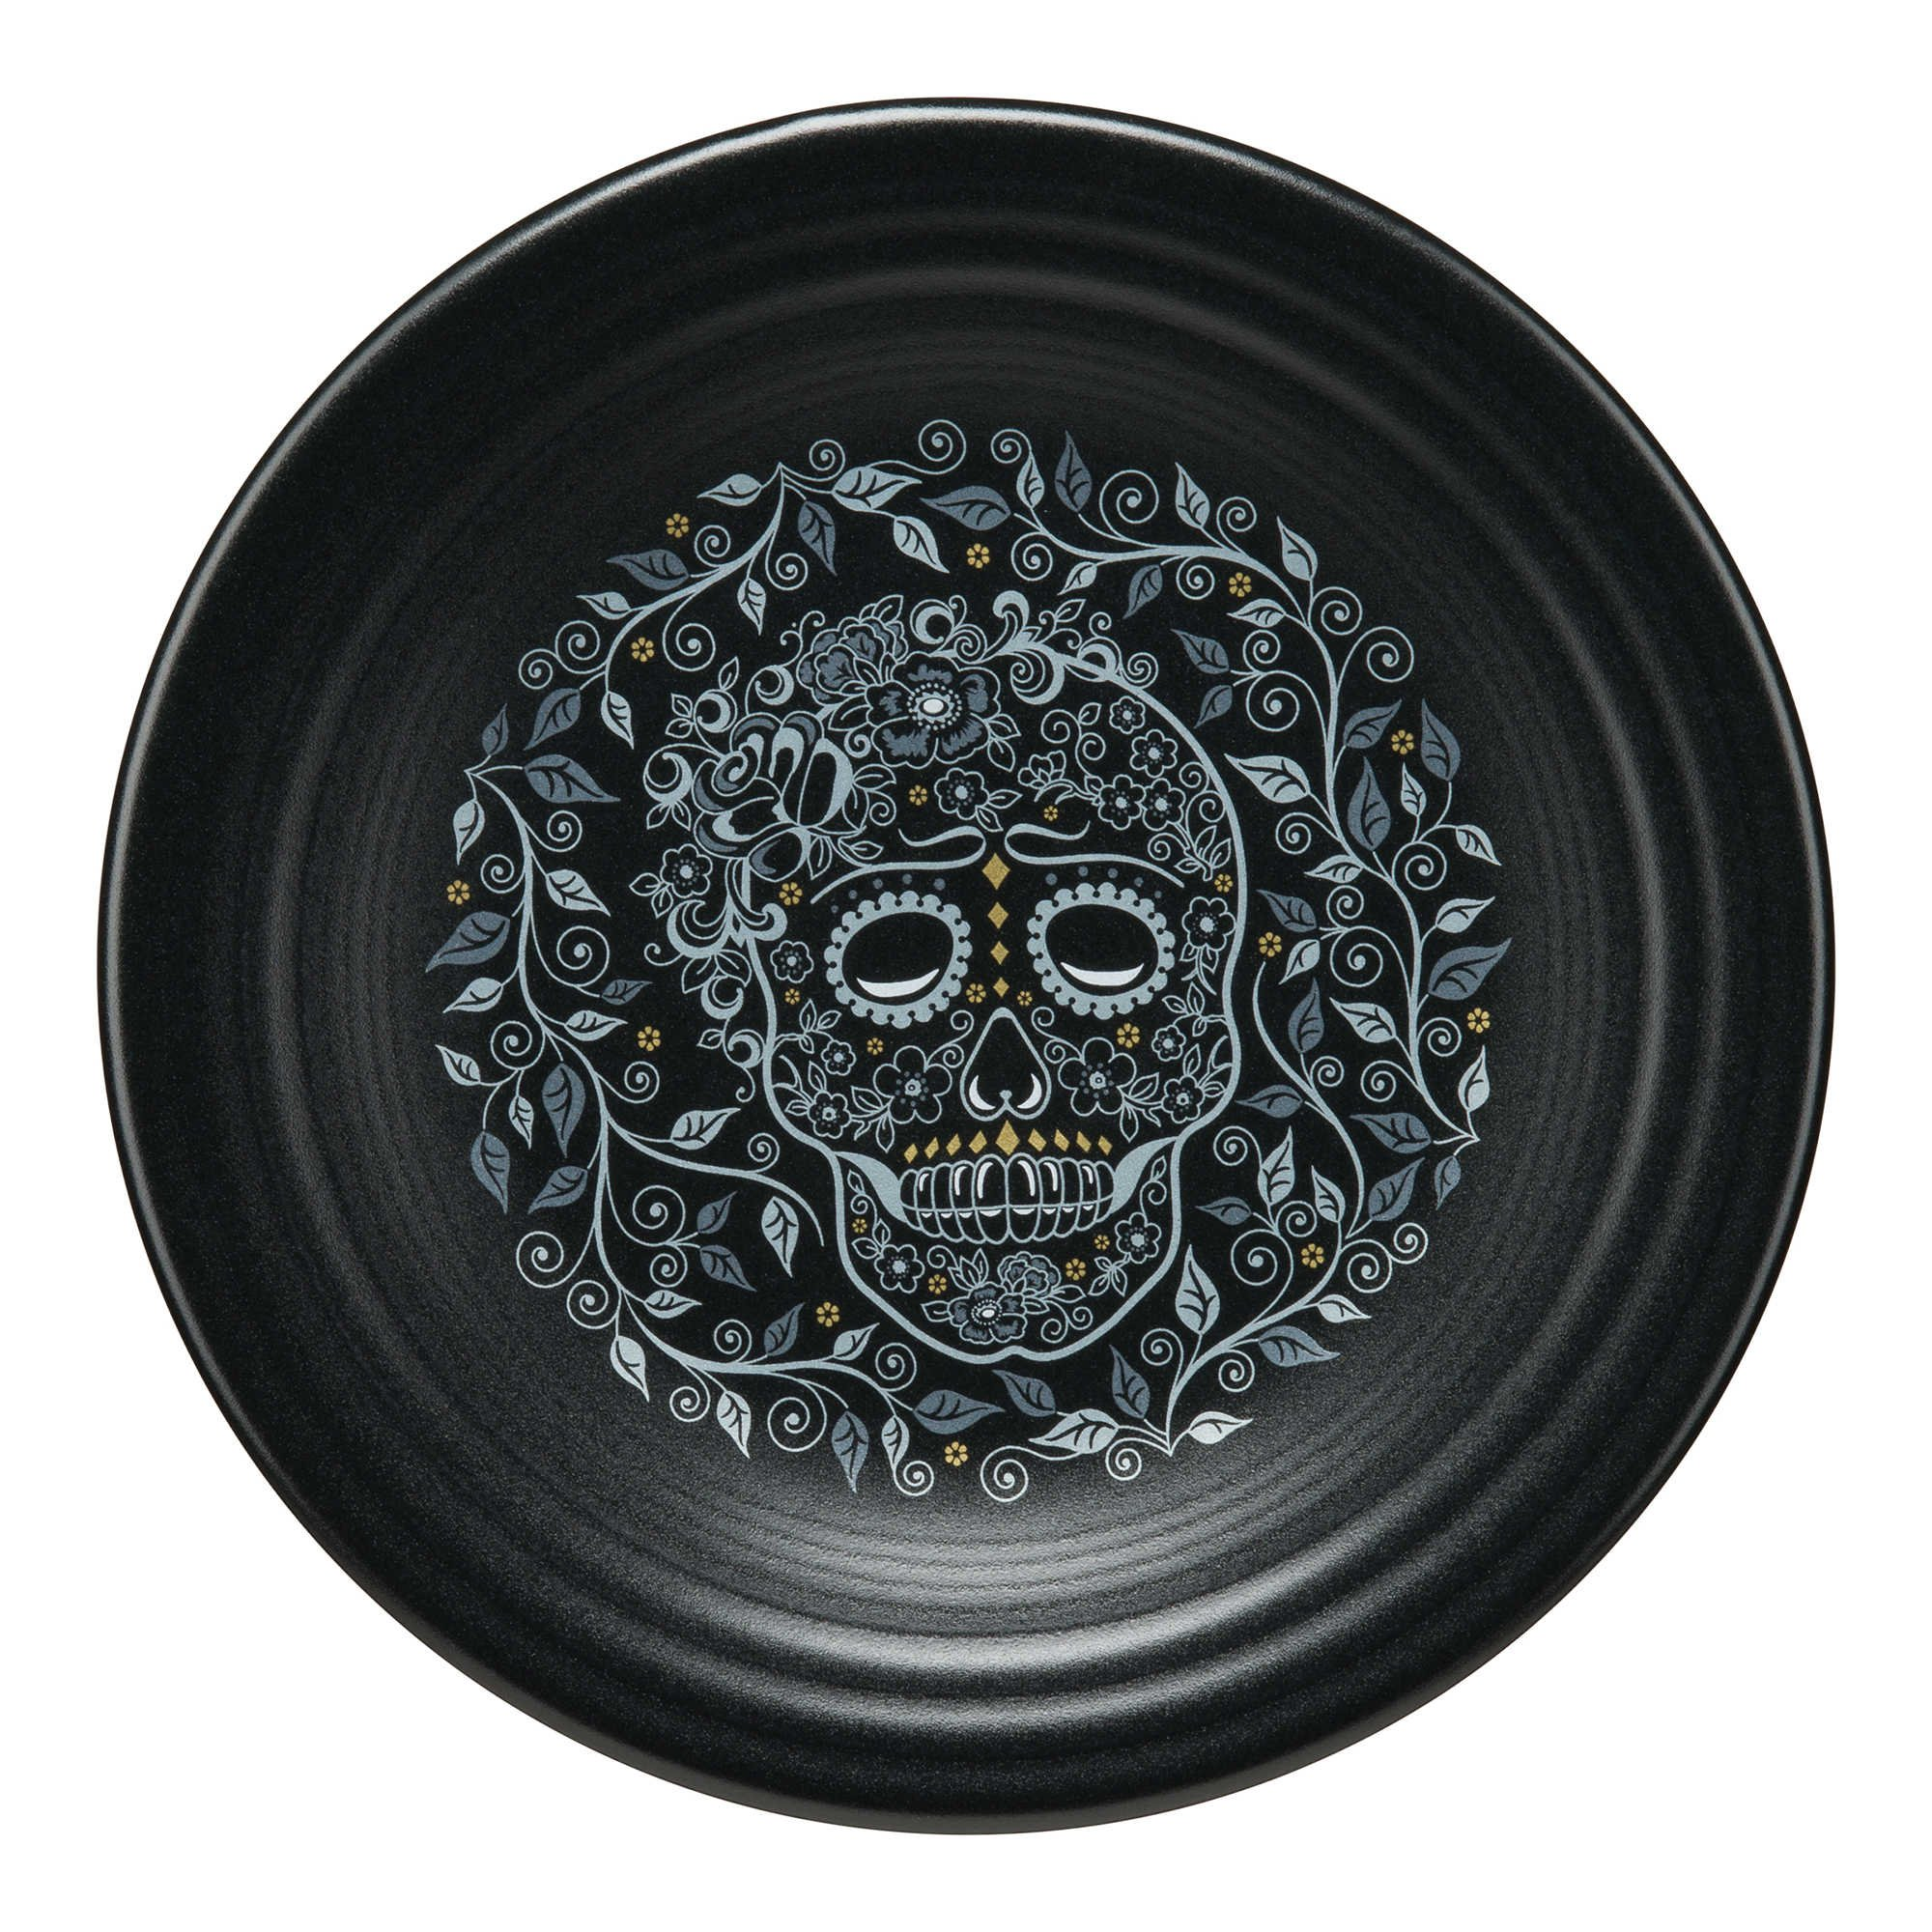 Fiesta Chip-Resistant Haunting Halloween Durable Plate Collection (Skull and Vine)